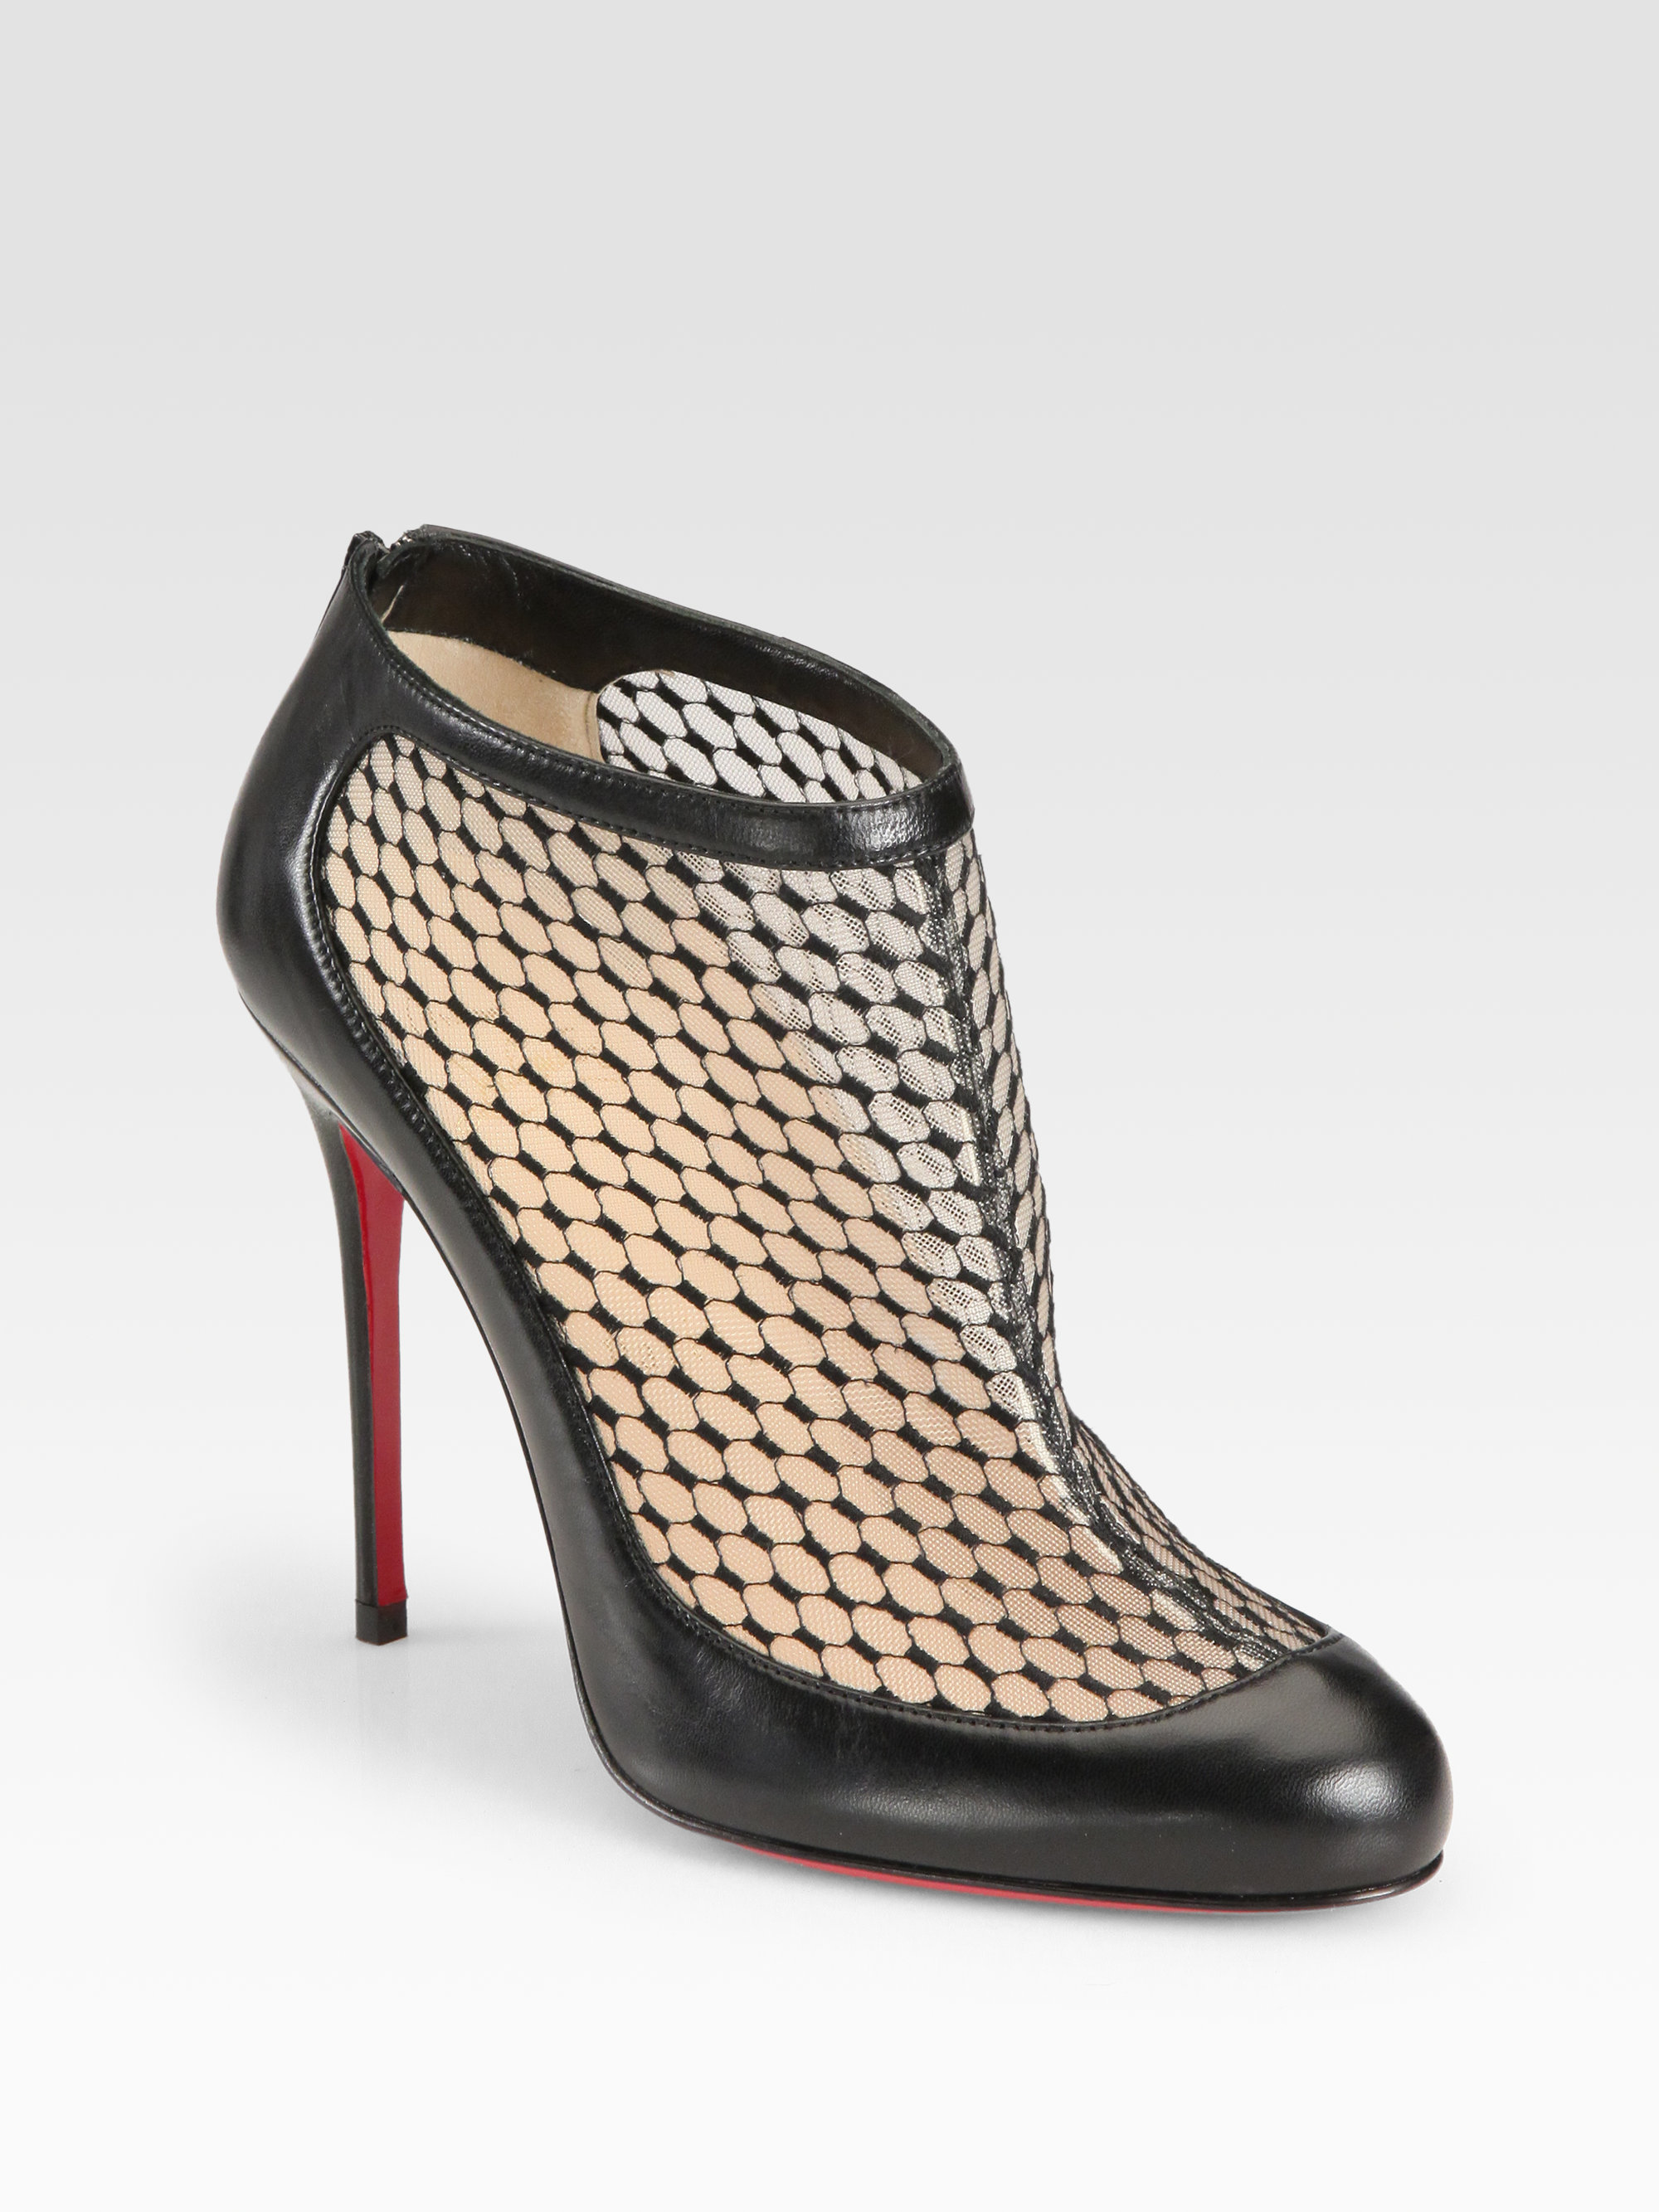 8cb7a7ea5f06 order christian louboutin pumps 29aac 240a2  closeout lyst christian  louboutin anna may lace leather ankle boots in black fb1a5 3d985